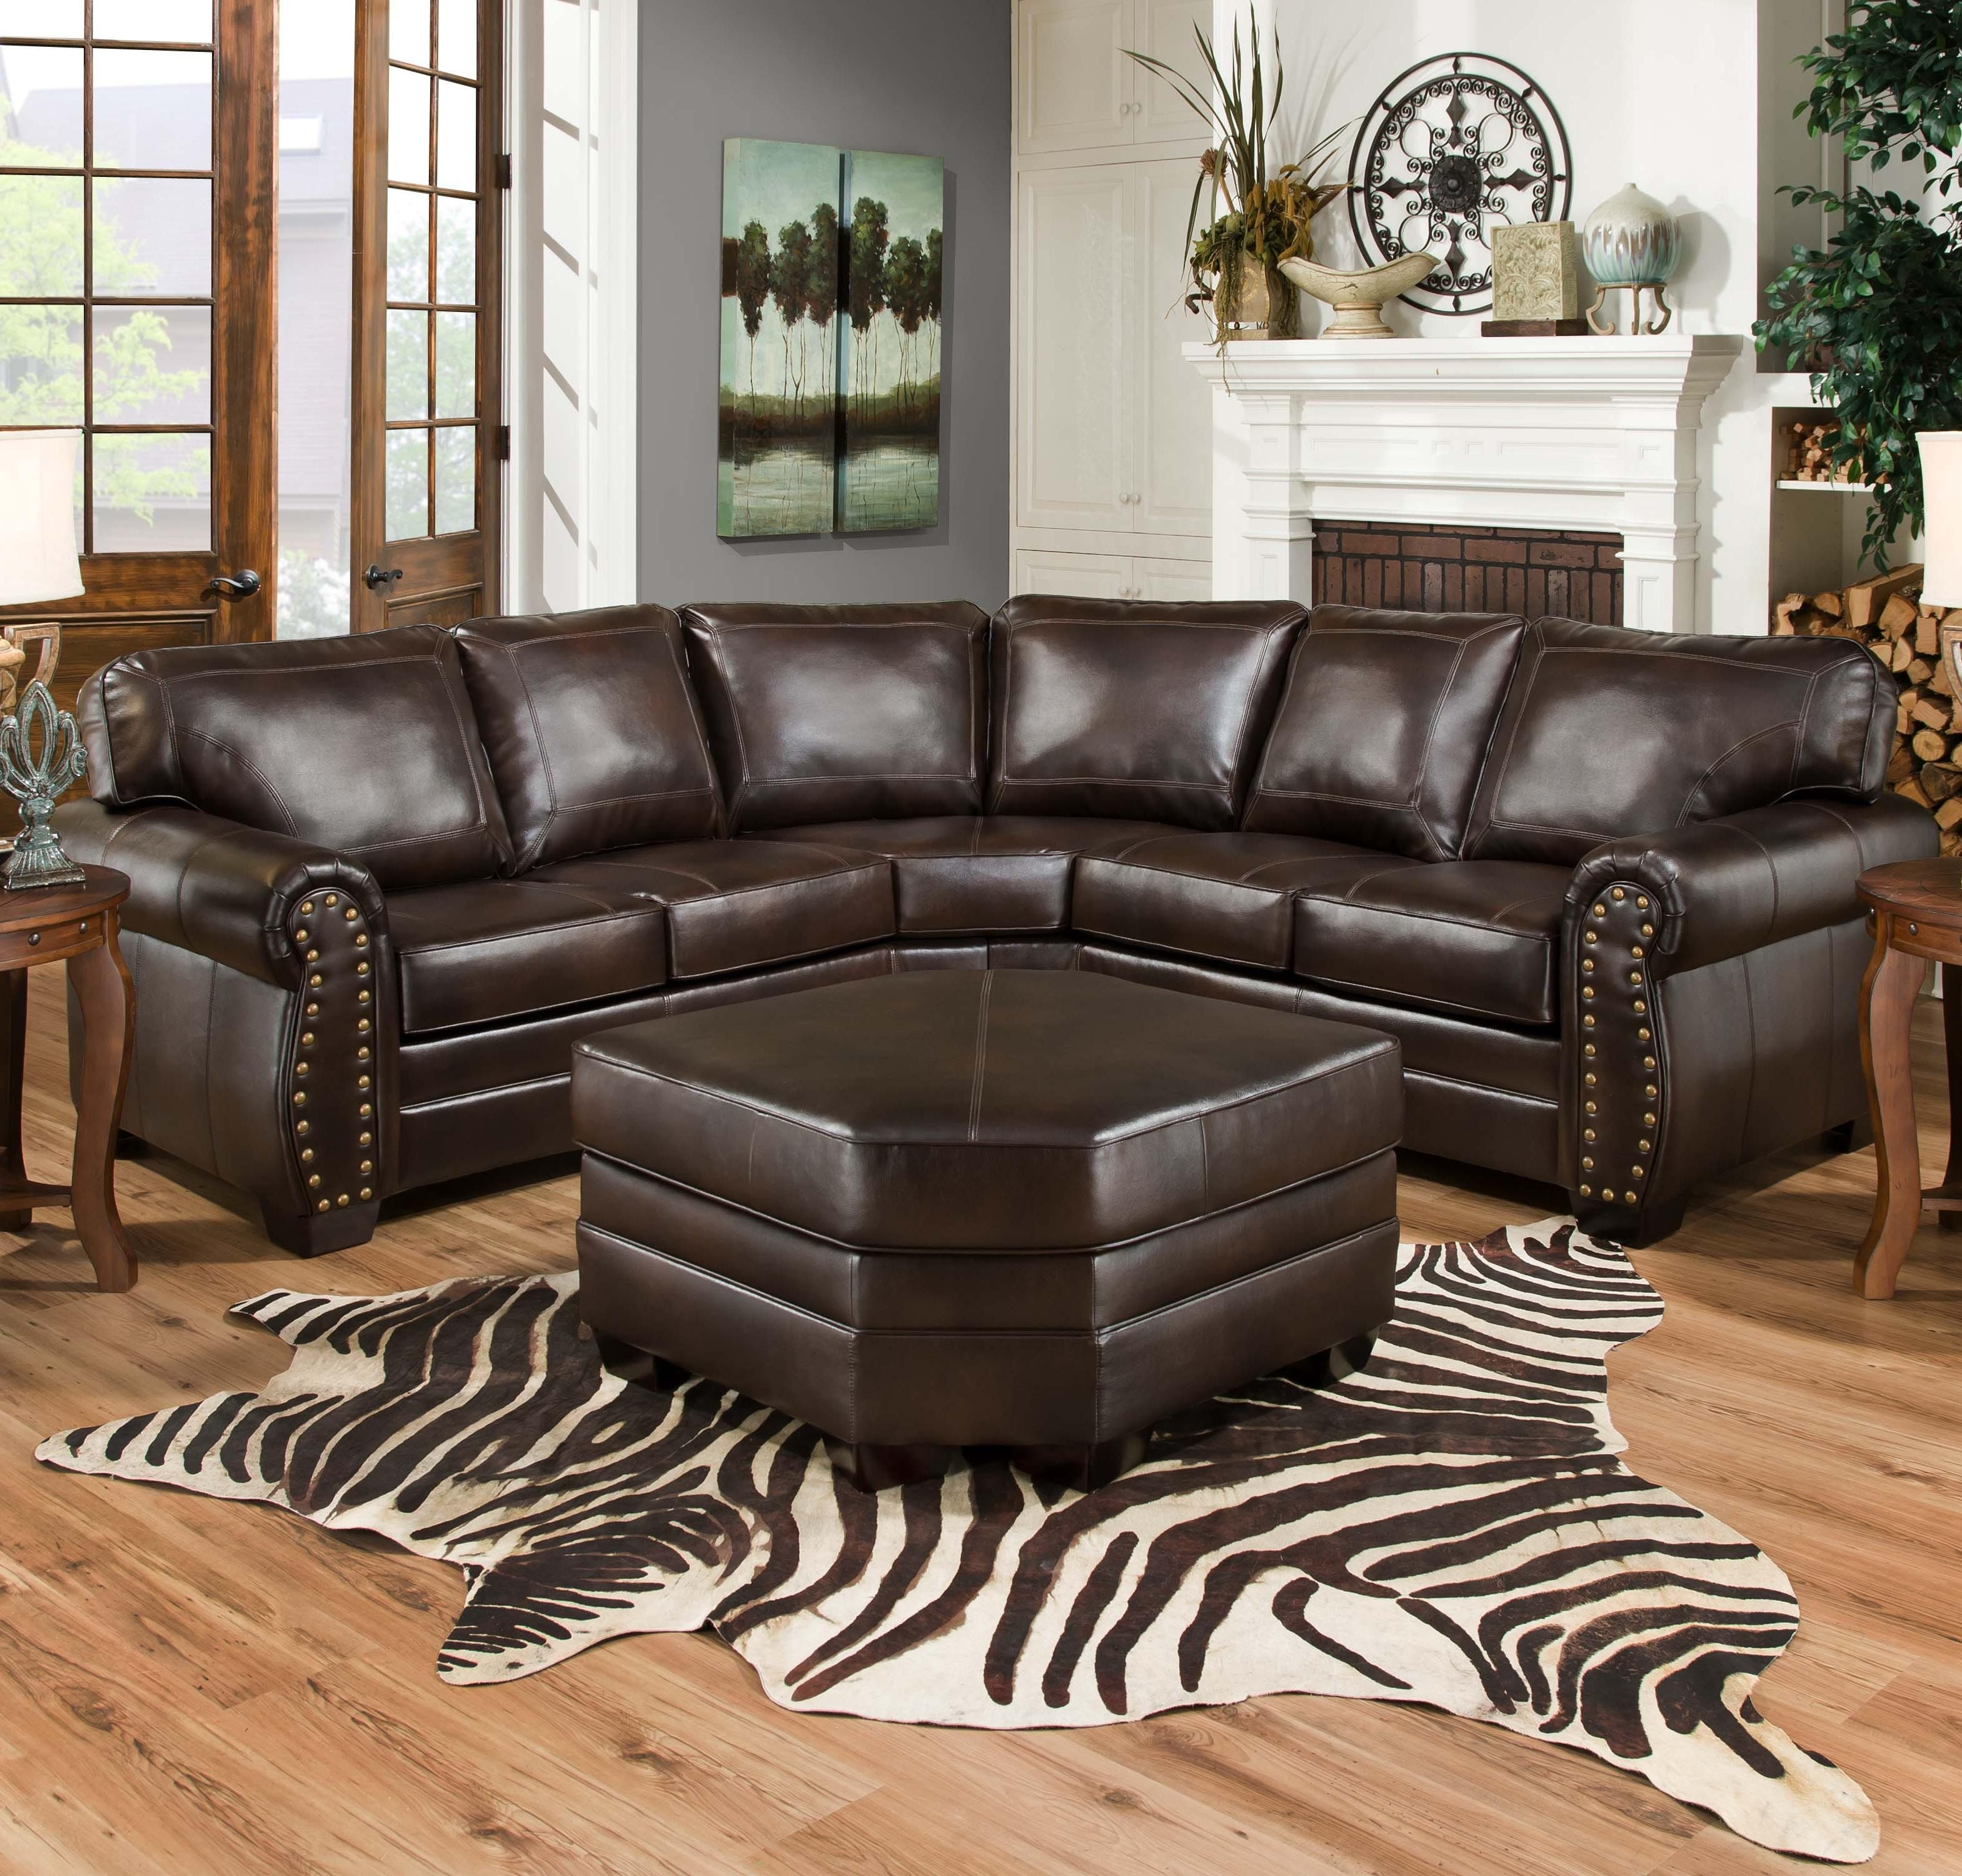 Simmons Upholstery 9222 Traditional Sectional Sofa With Rolled Arms with regard to Aspen 2 Piece Sectionals With Laf Chaise (Image 29 of 30)